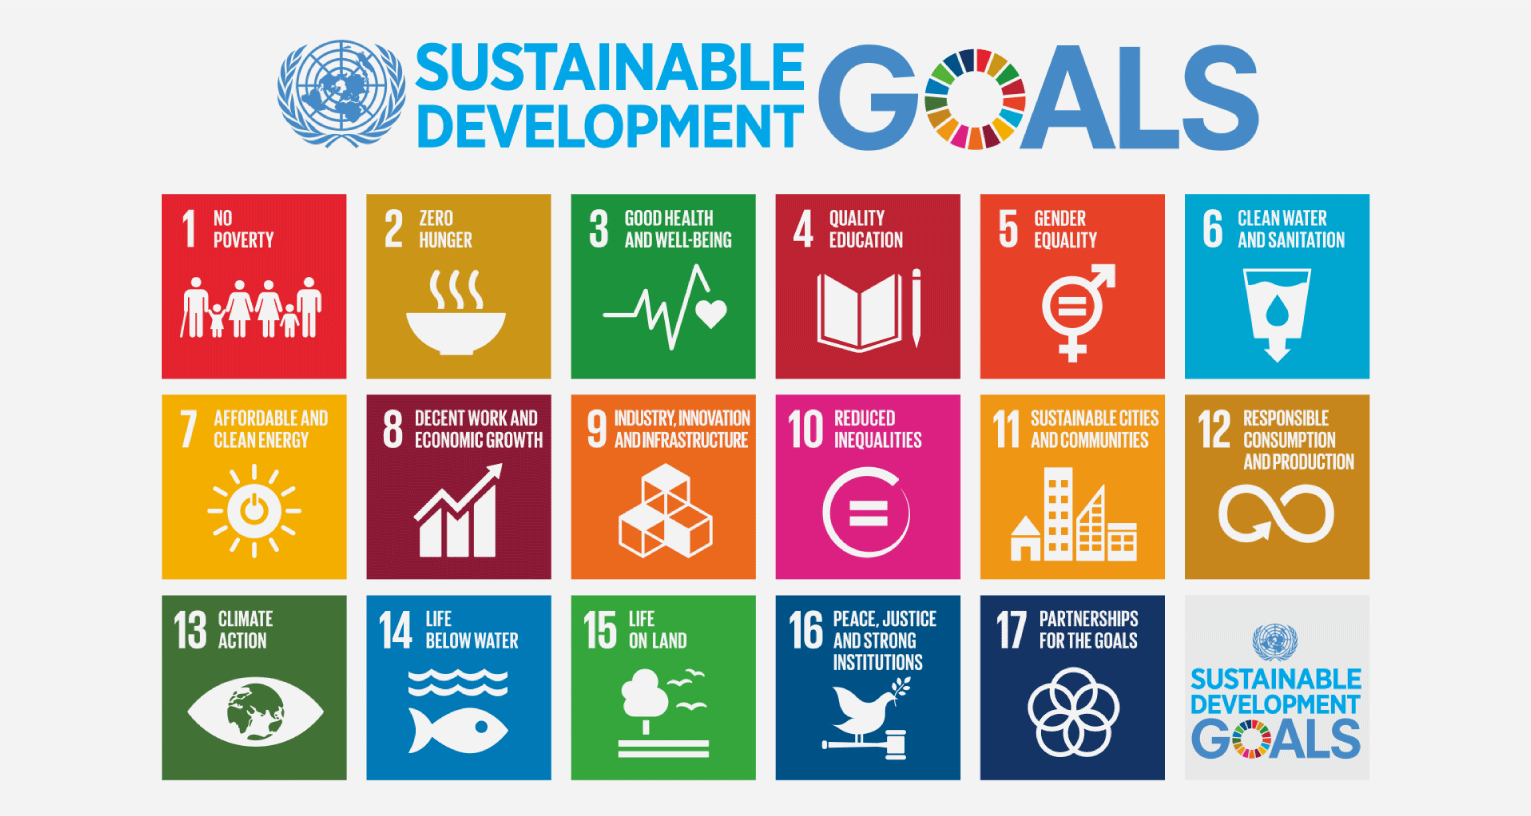 The 17 Sustainable Development Goals adopted by the United Nations General Assembly in 2015